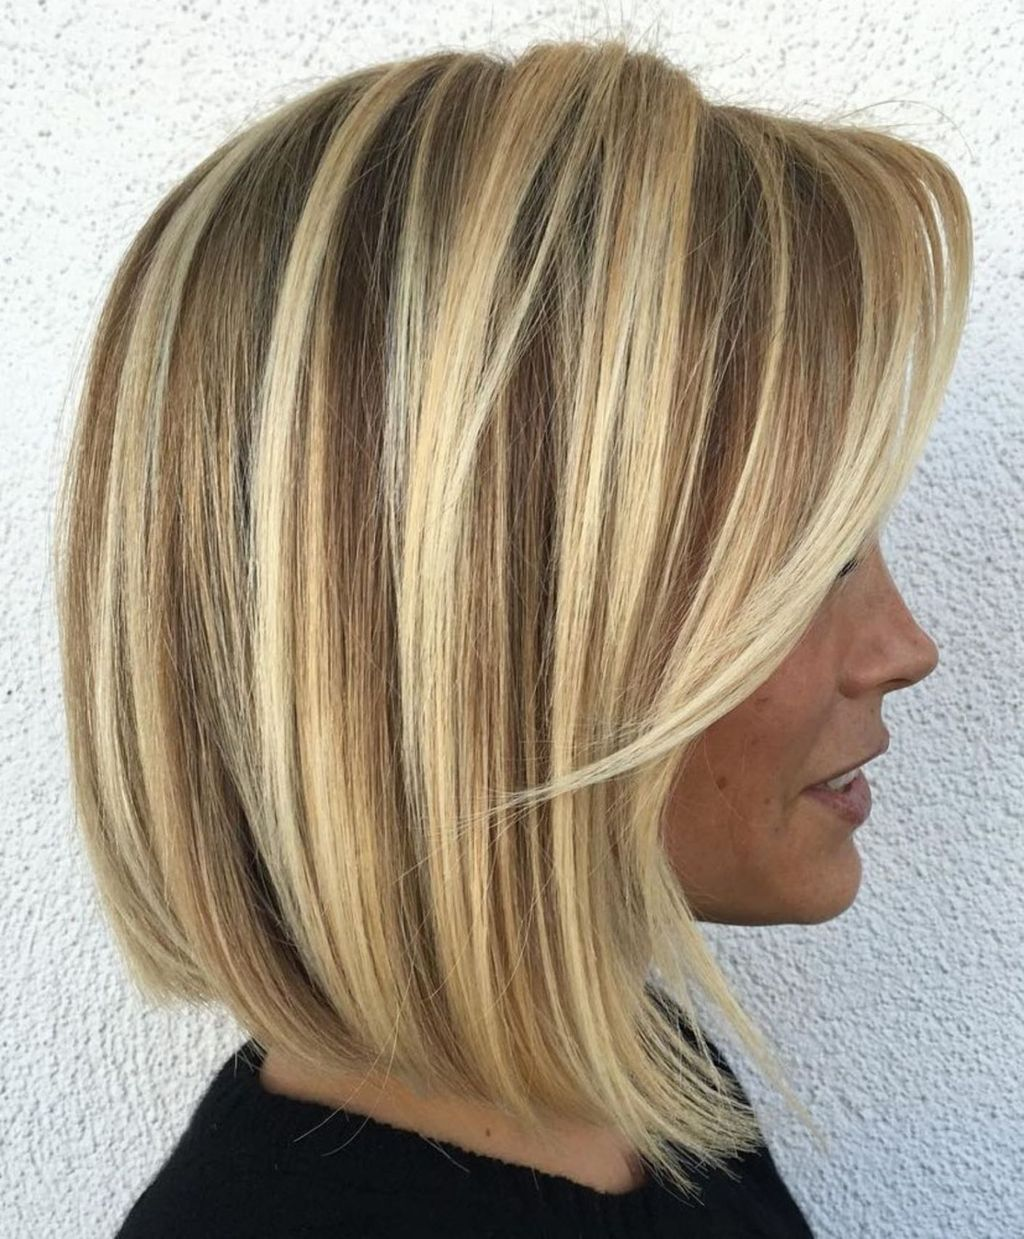 36 The Best Medium Length Bob Hairstyle Ideas To Look Beautiful Dresscodee Thick Hair Styles Hair Styles Hairstyles For Thin Hair